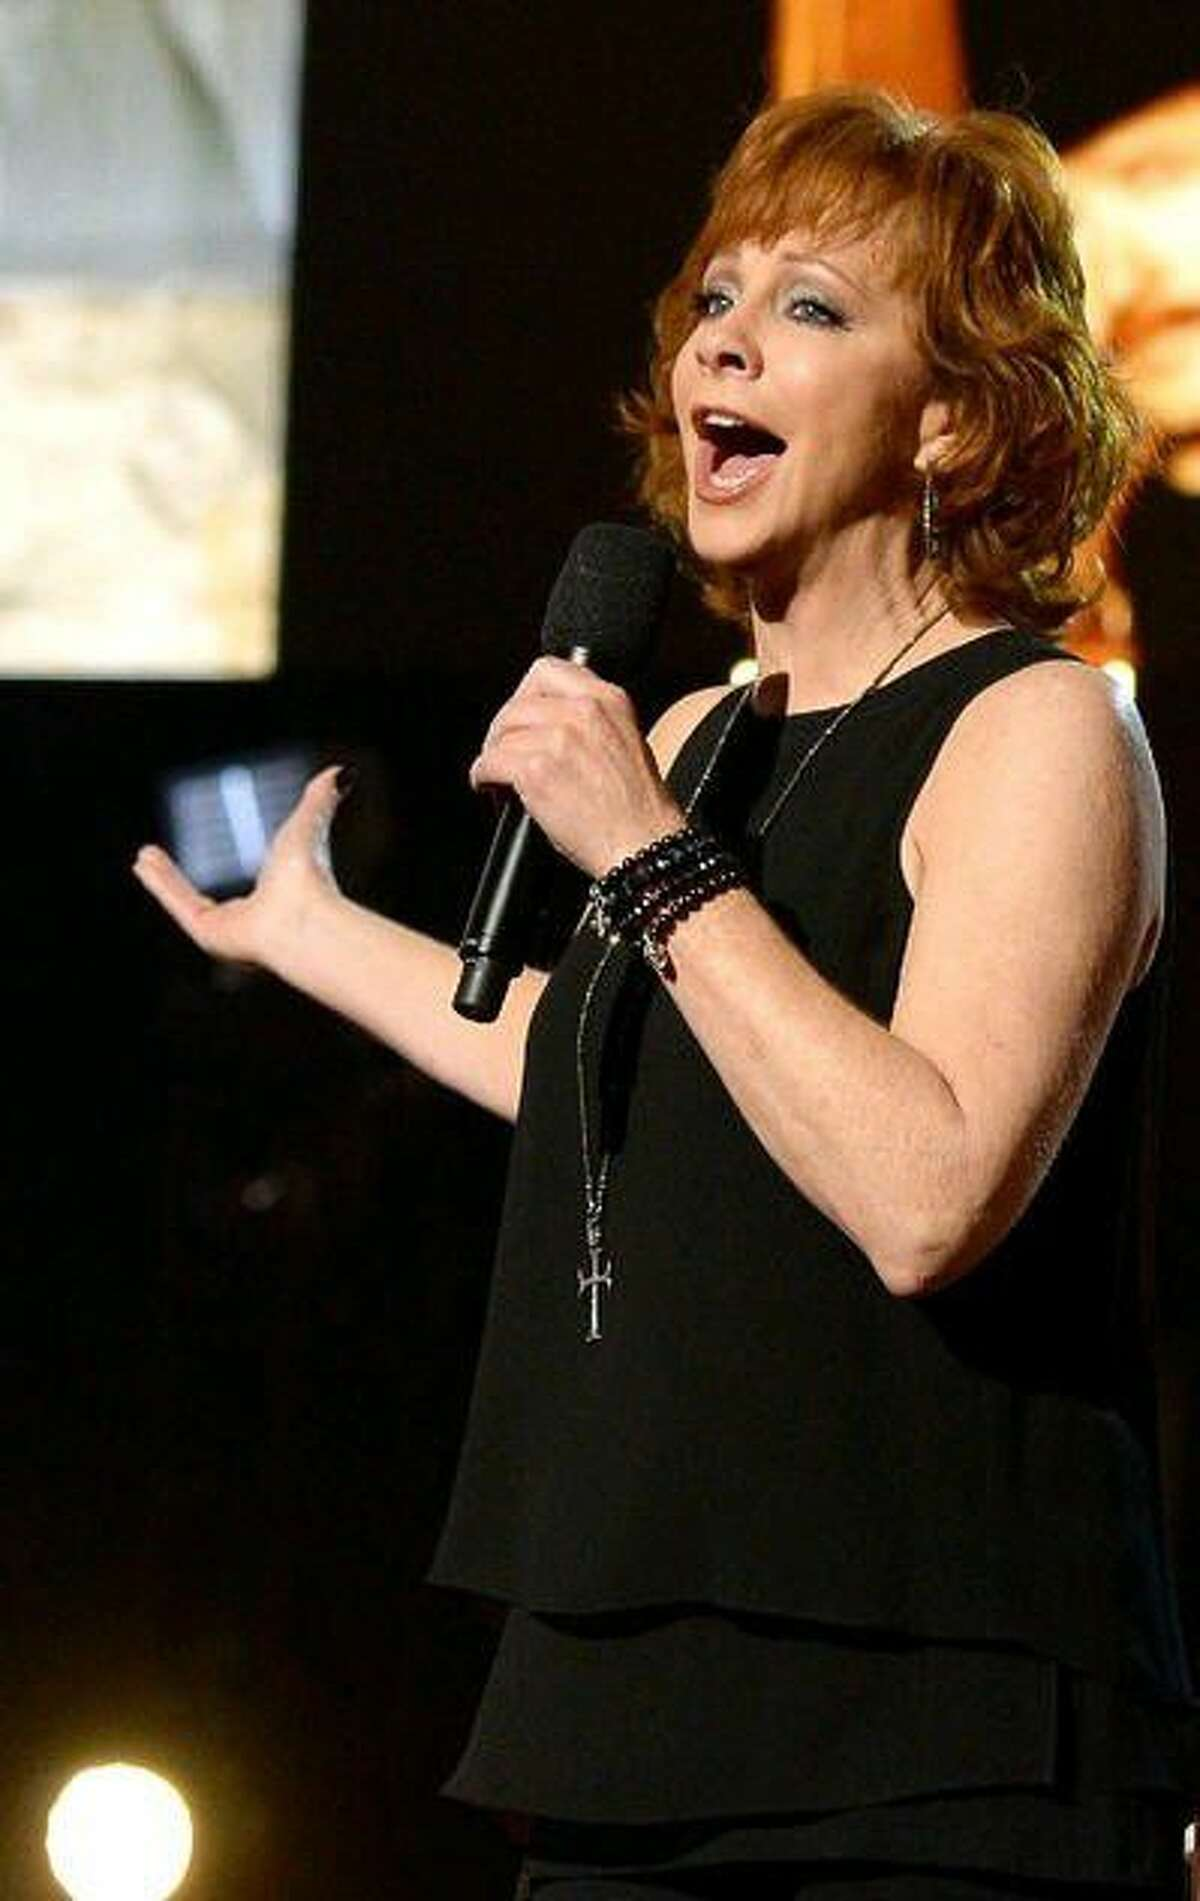 Recording artist Reba McEntire will perform at Smart Financial Centre, 18111 Lexington Blvd., Sugar Land, at 8 p.m. Jan. 27. Above, she's on stage at the 2016 American Country Countdown Awards on May 1.